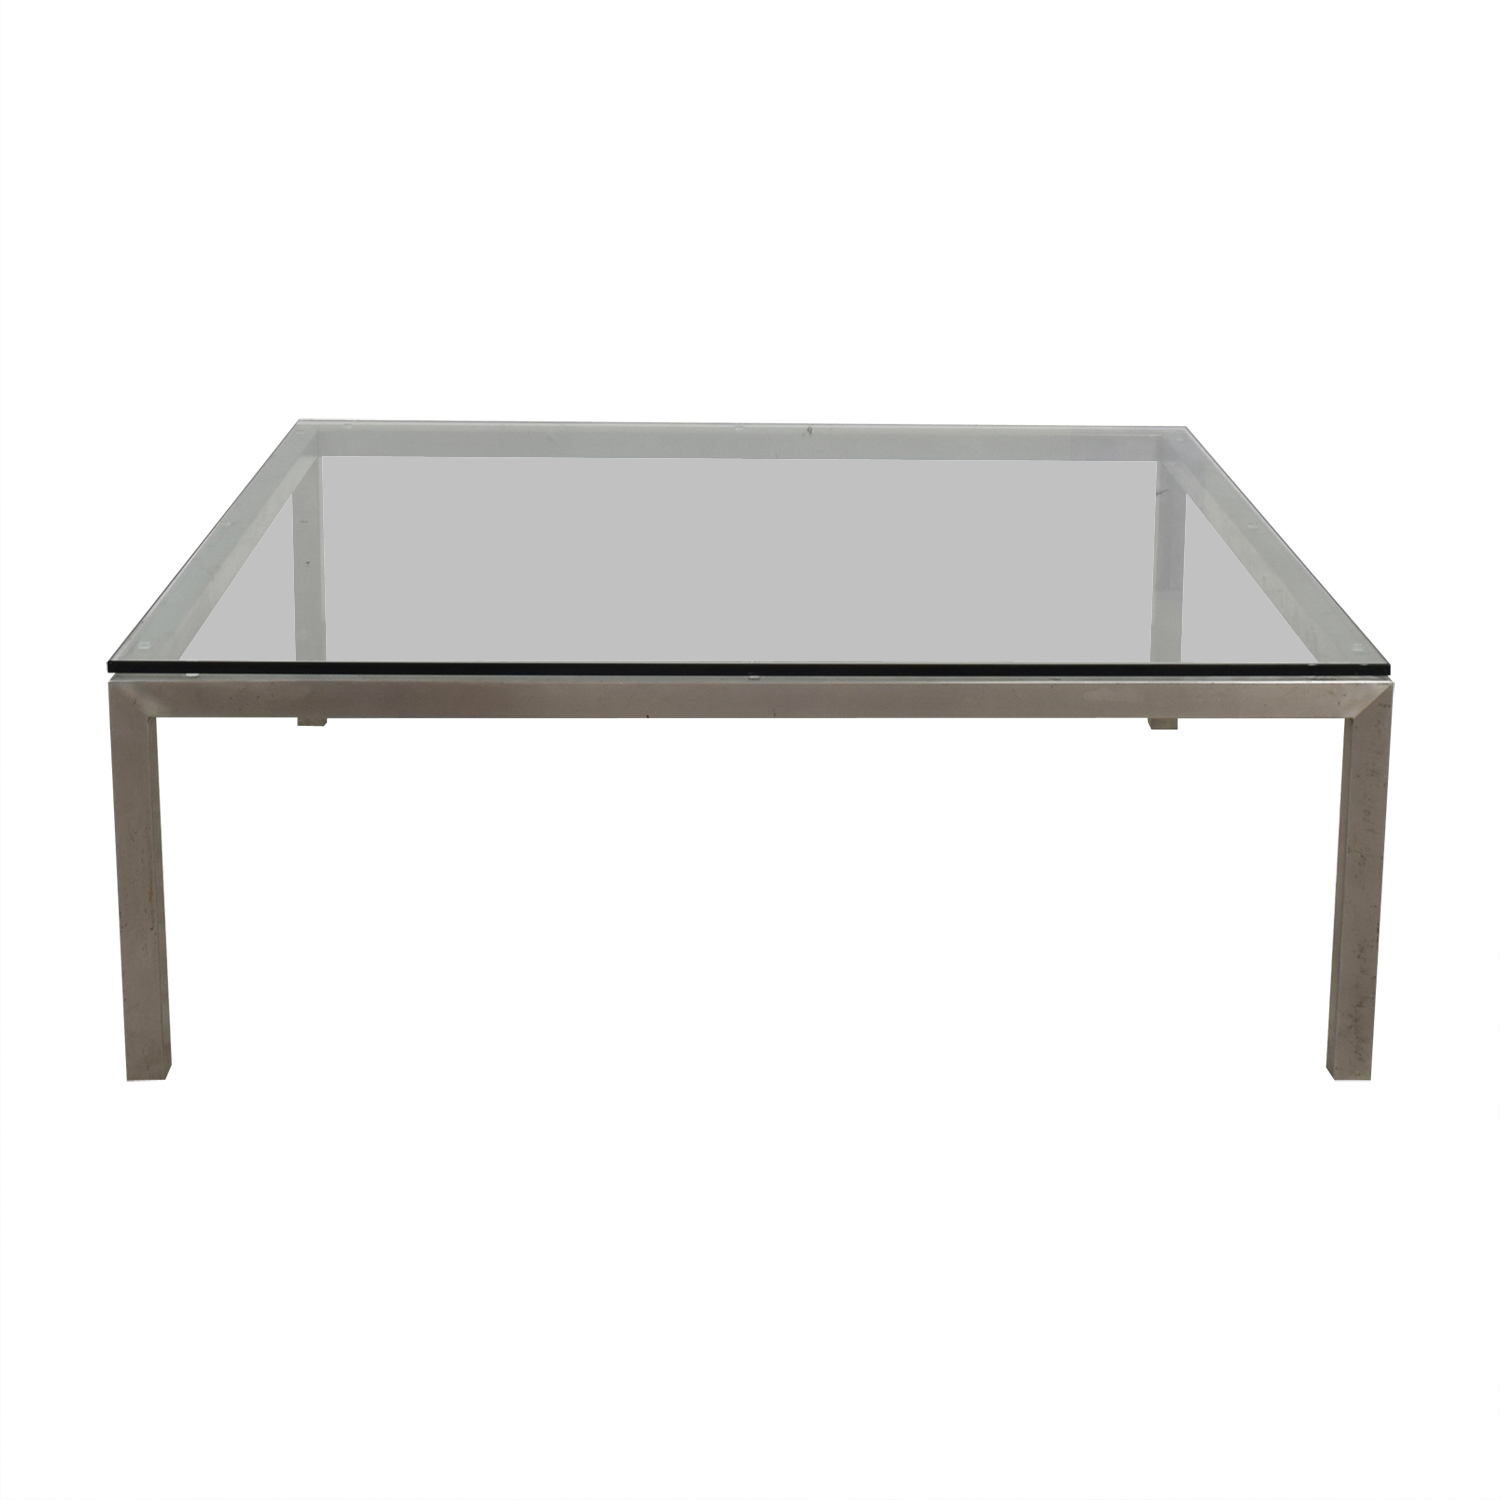 buy Room & Board Portica Glass Top Coffee Table Room & Board Tables